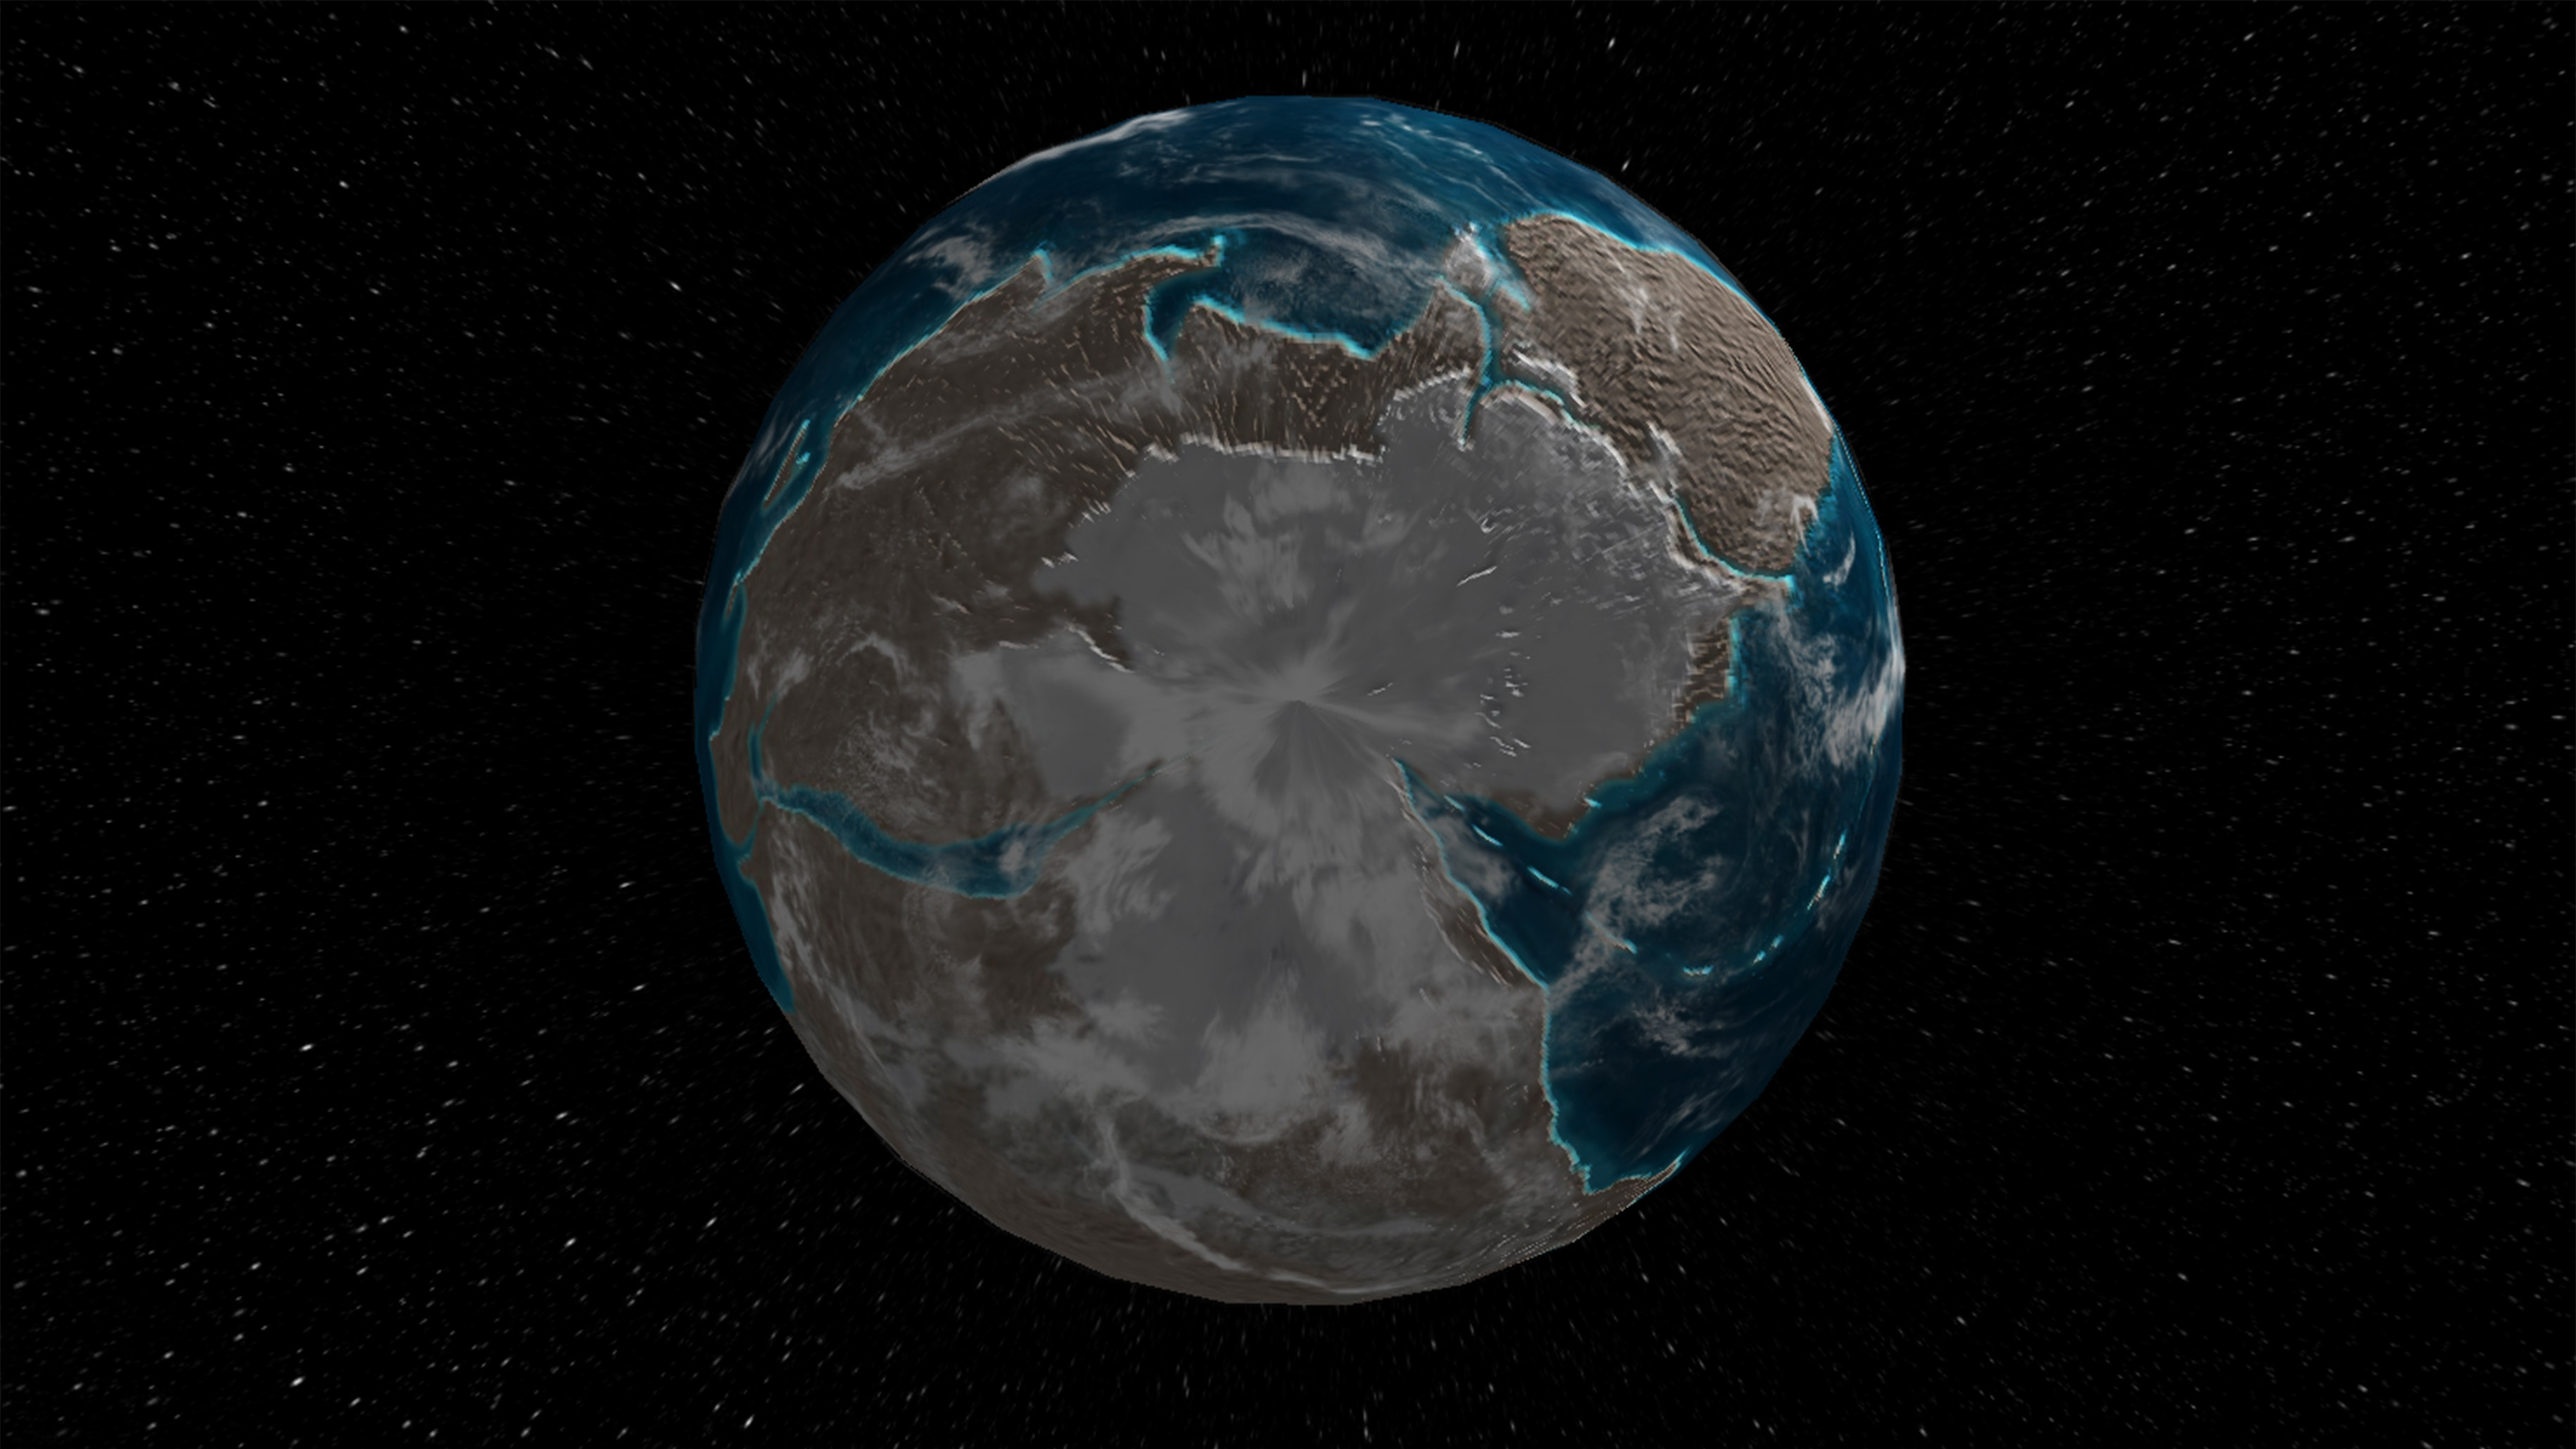 Ancient Earth Globe: Interactive map lets you see what Earth ... on earth timeline map, earth radius map, earth atlas map, earth circle map, earth surface map, earth ball map, earth orbit map, earth normal map, earth geoid map, earth hexagon map, earth parallel map, earth hemisphere map, earth heat map, earth cylinder map, earth topology map, earth grid map, earth square map, earth gravity map,